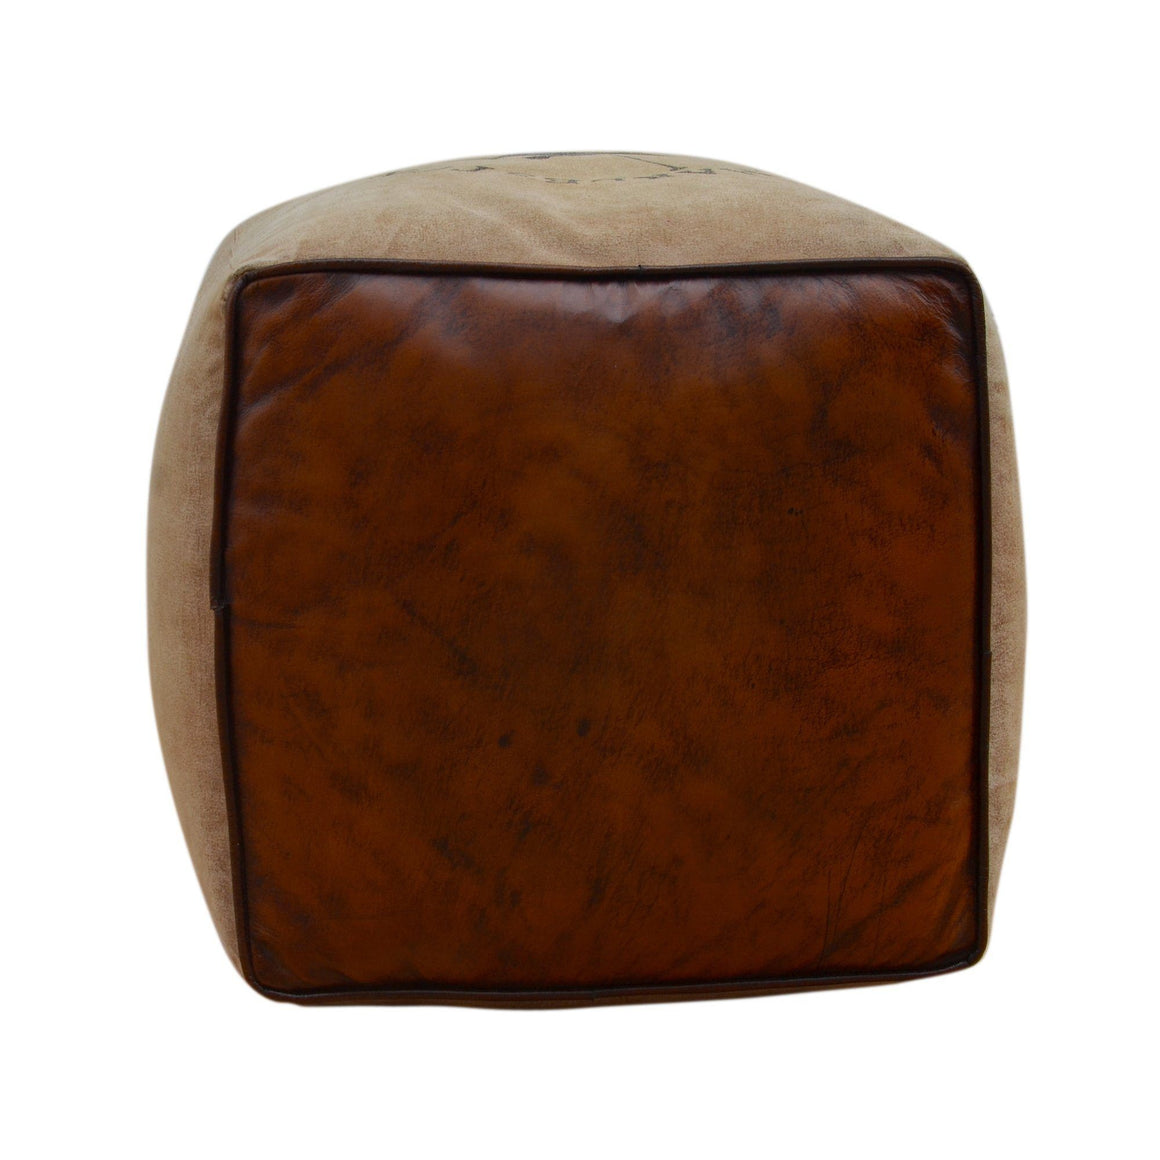 CHARLESTON POLO SQUARE OTTOMAN Philbee Interiors